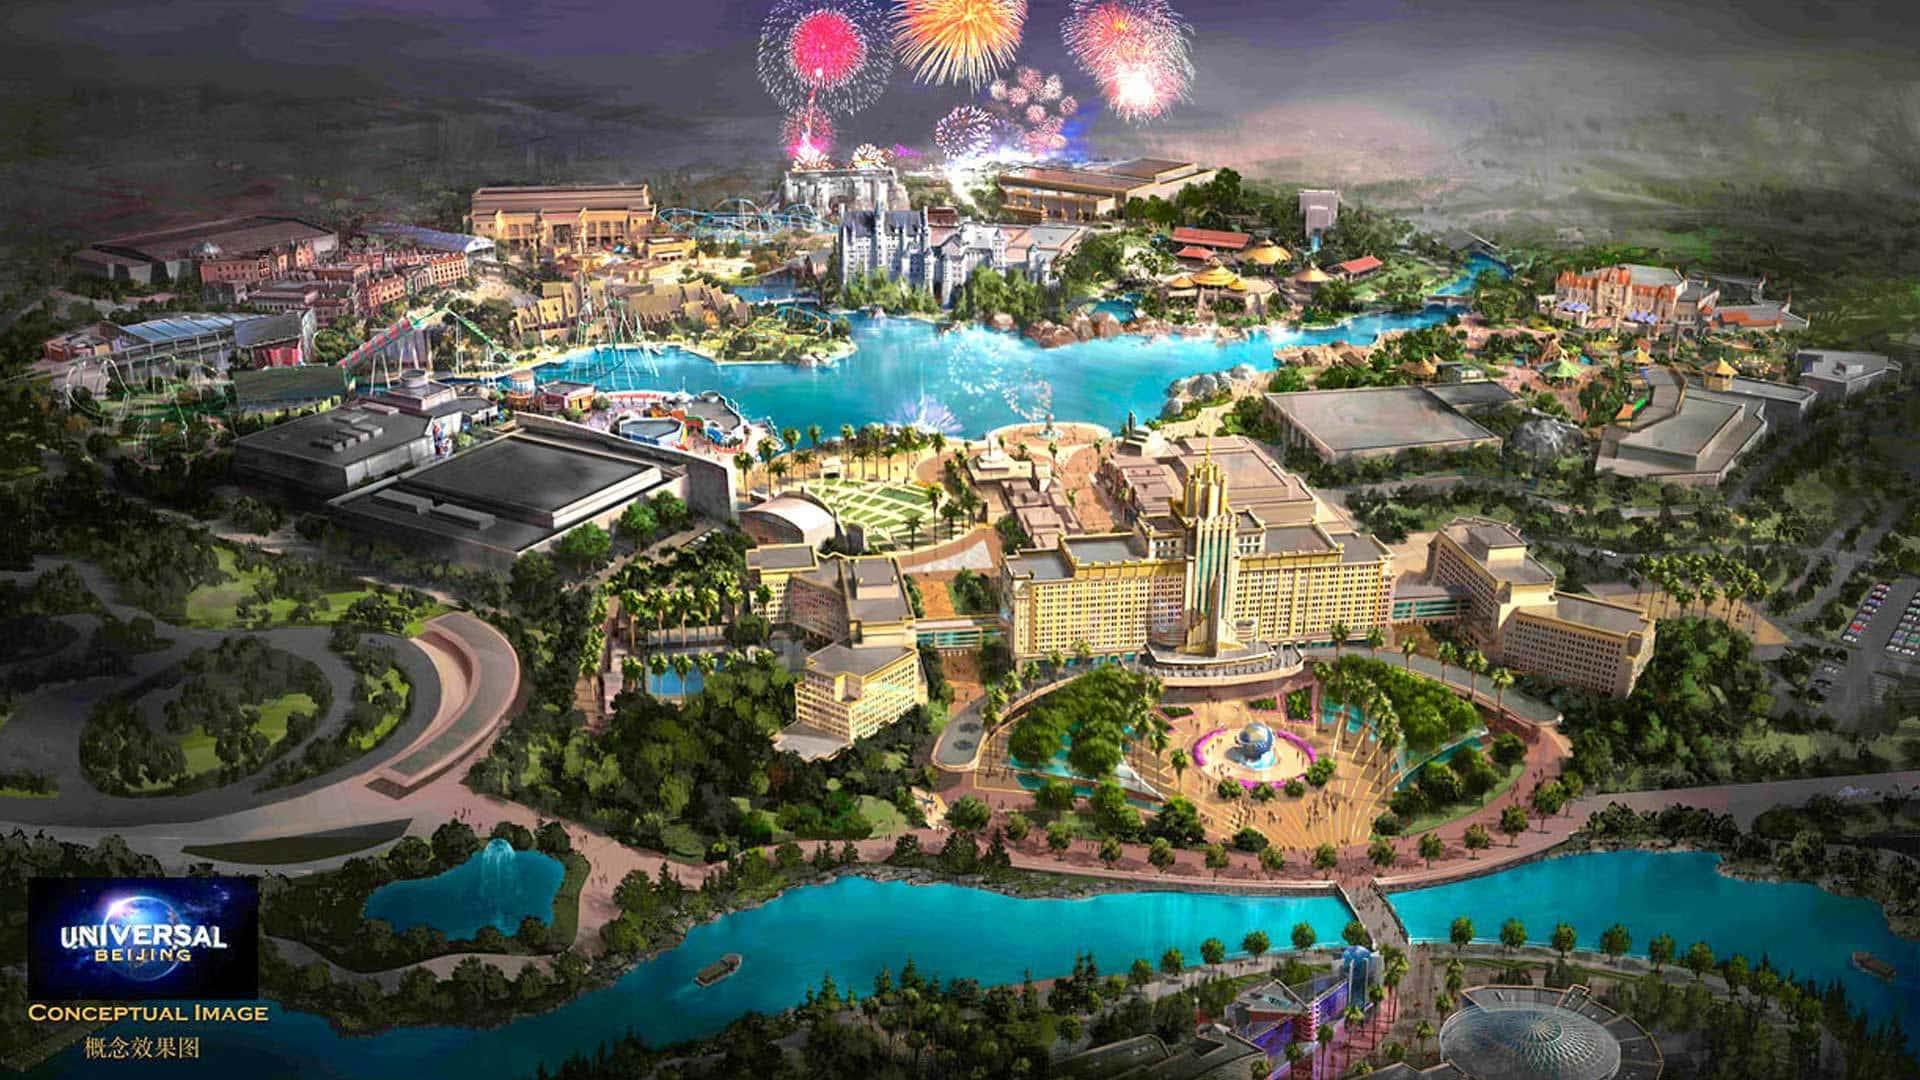 Universal expanding its global theme park empire?